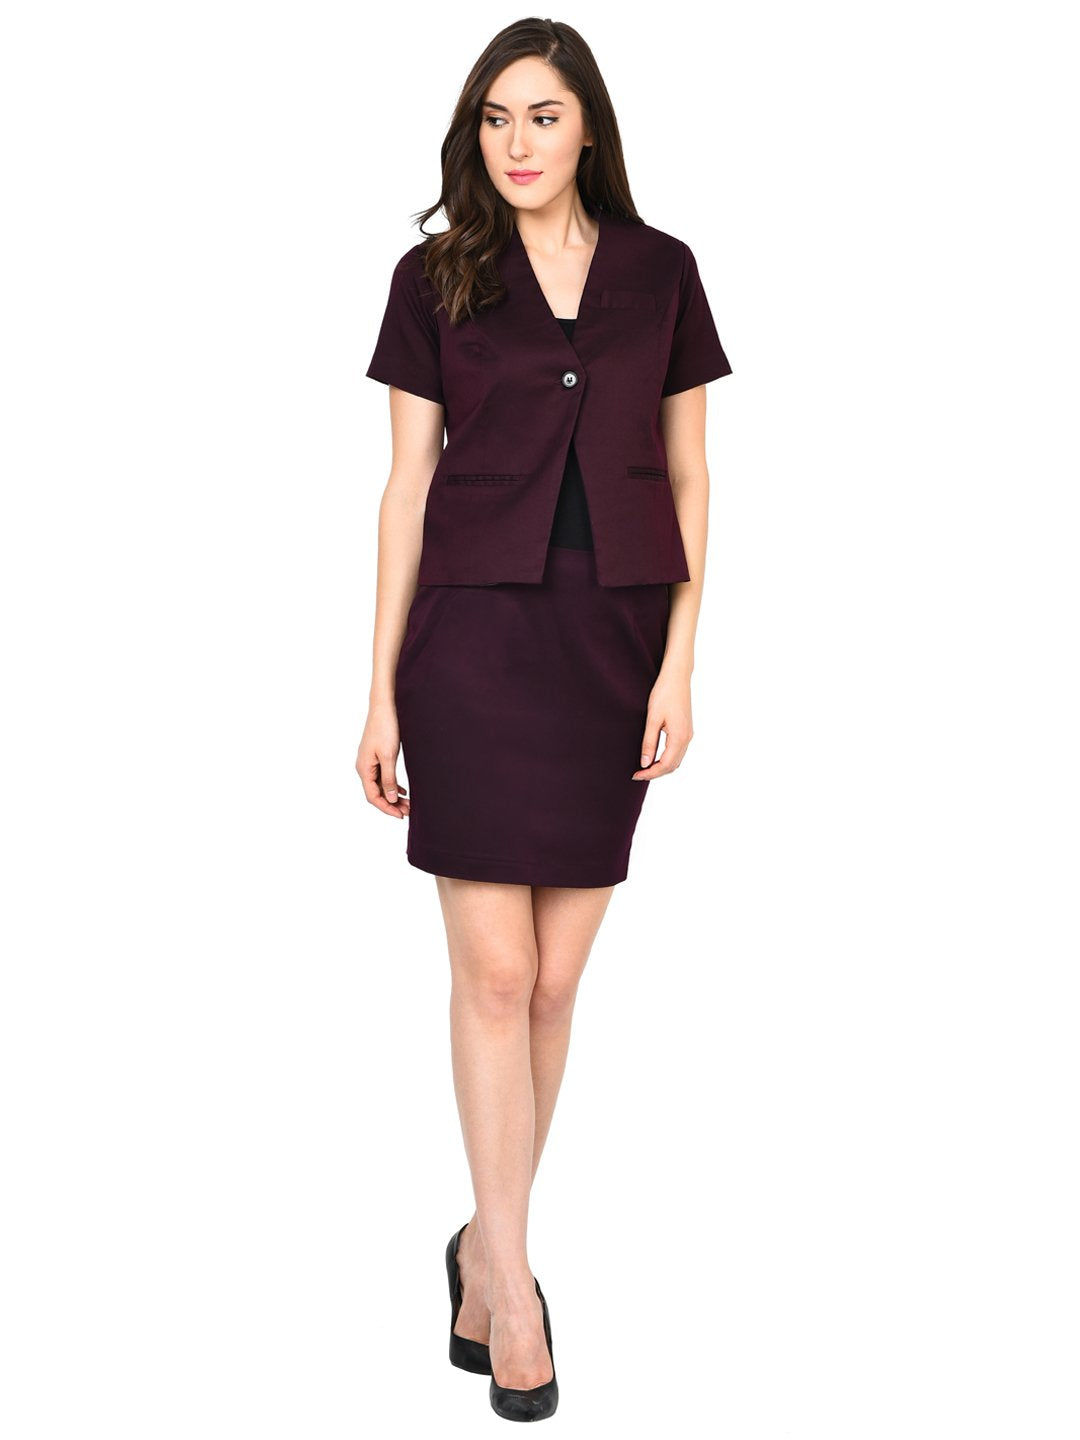 Castle Wine Solid Skirt and Coat Set